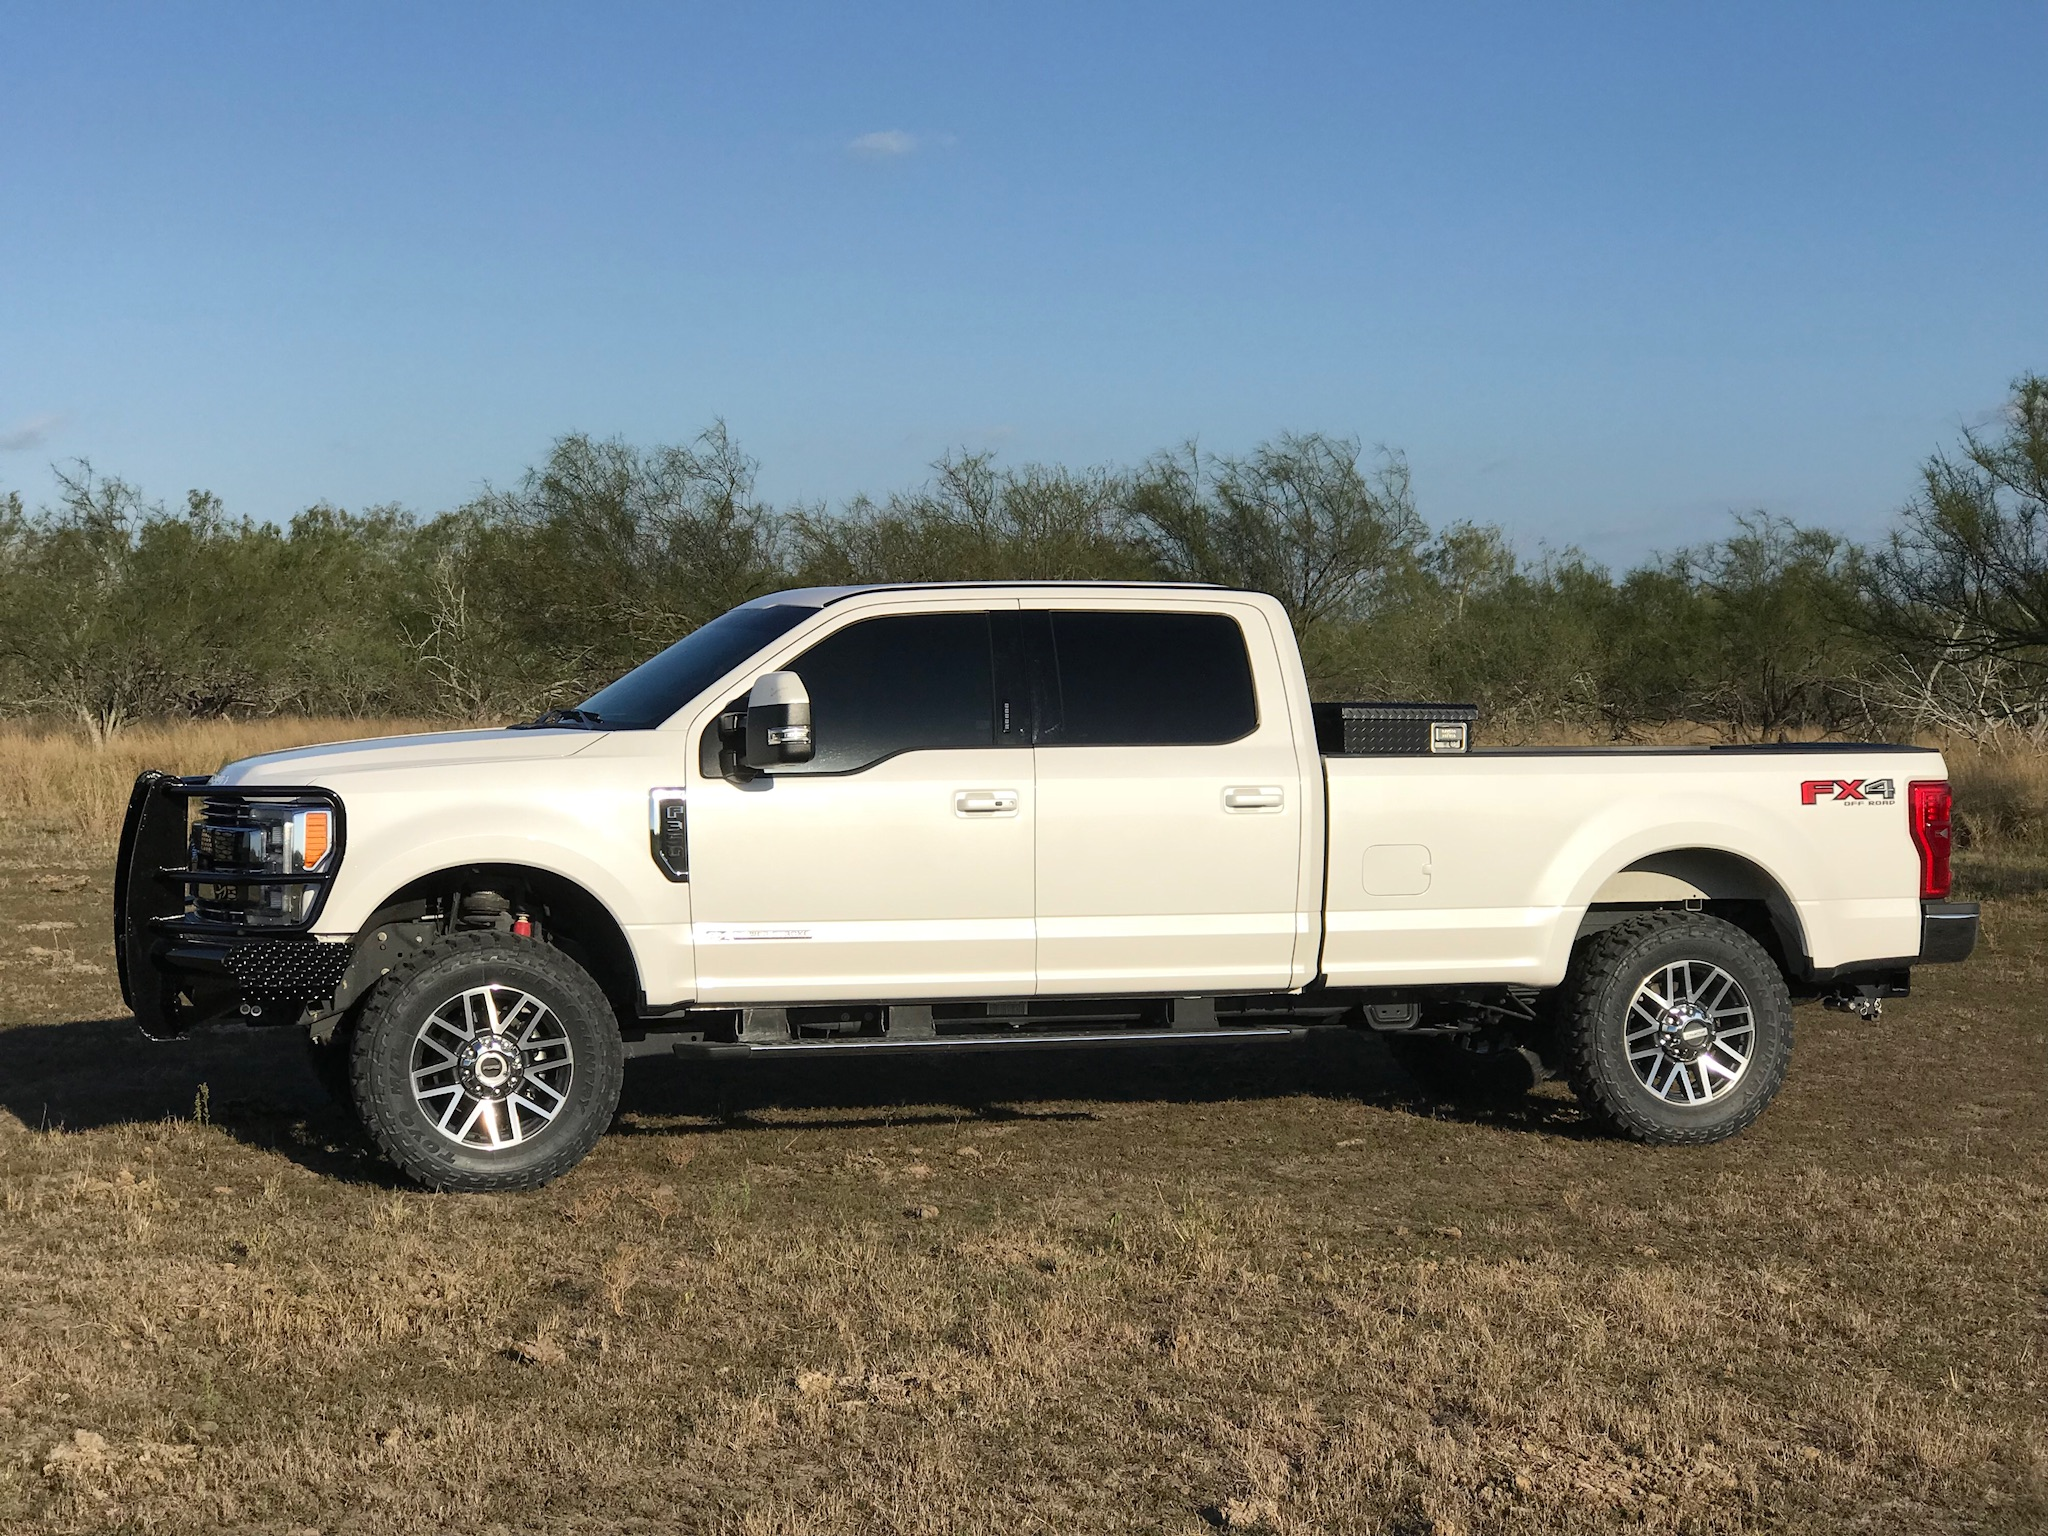 2017 F250 Leveling Kit Upcoming Cars 2020 Toyota Land Cruiser 200 Lift Bds 2 Ford Powerstroke Diesel Forum